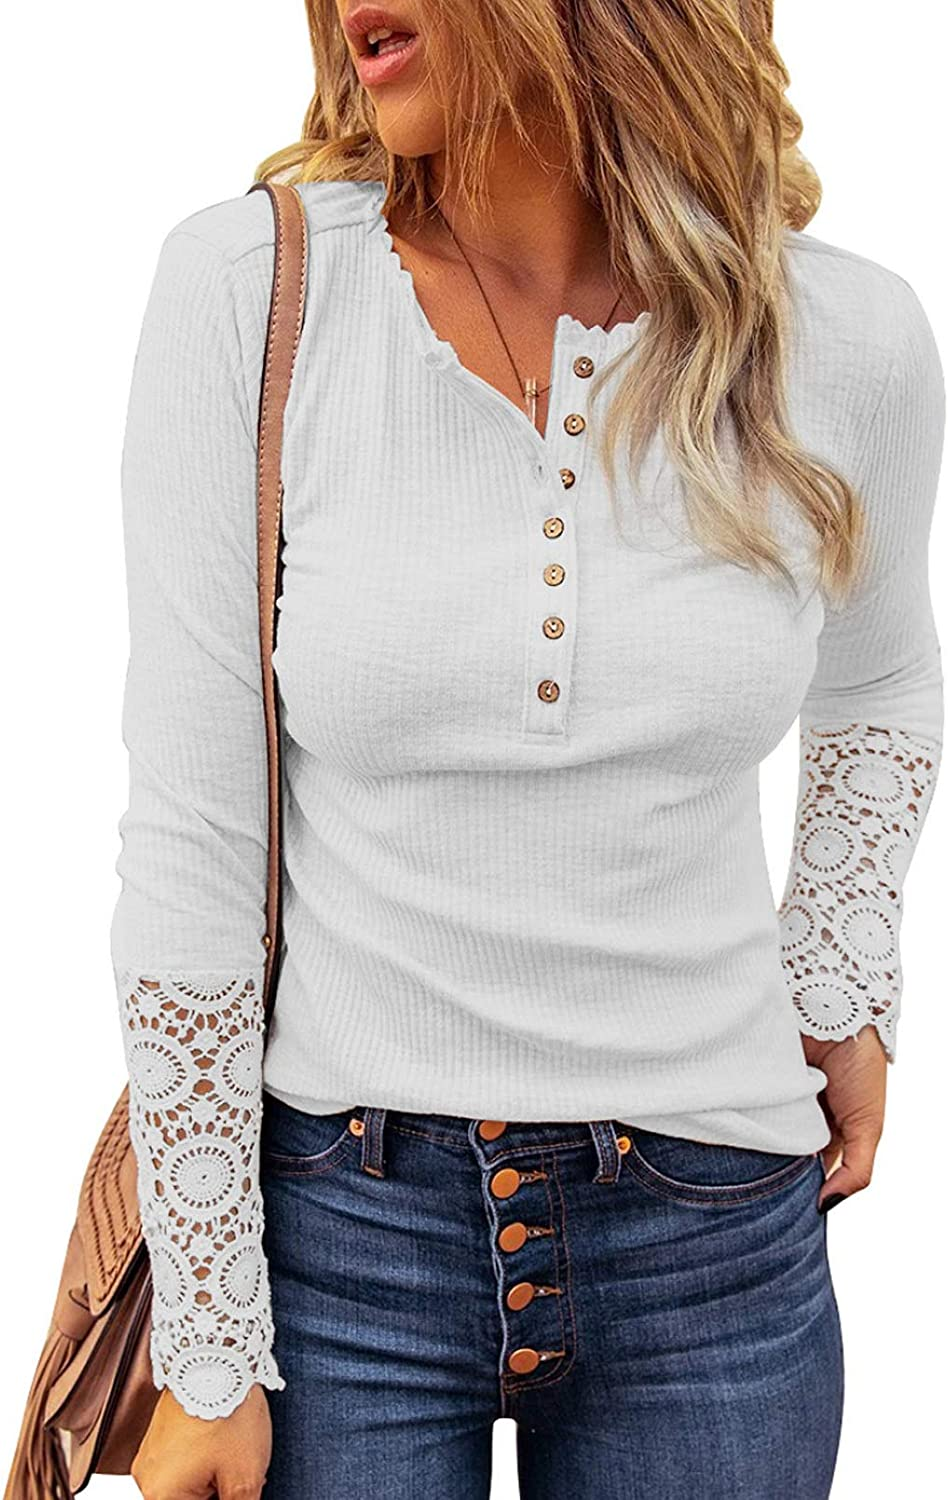 FARYSAYS Women's Lace Crochet Long Sleeve Down Max 61% Max 53% OFF OFF Rib Shirts Button